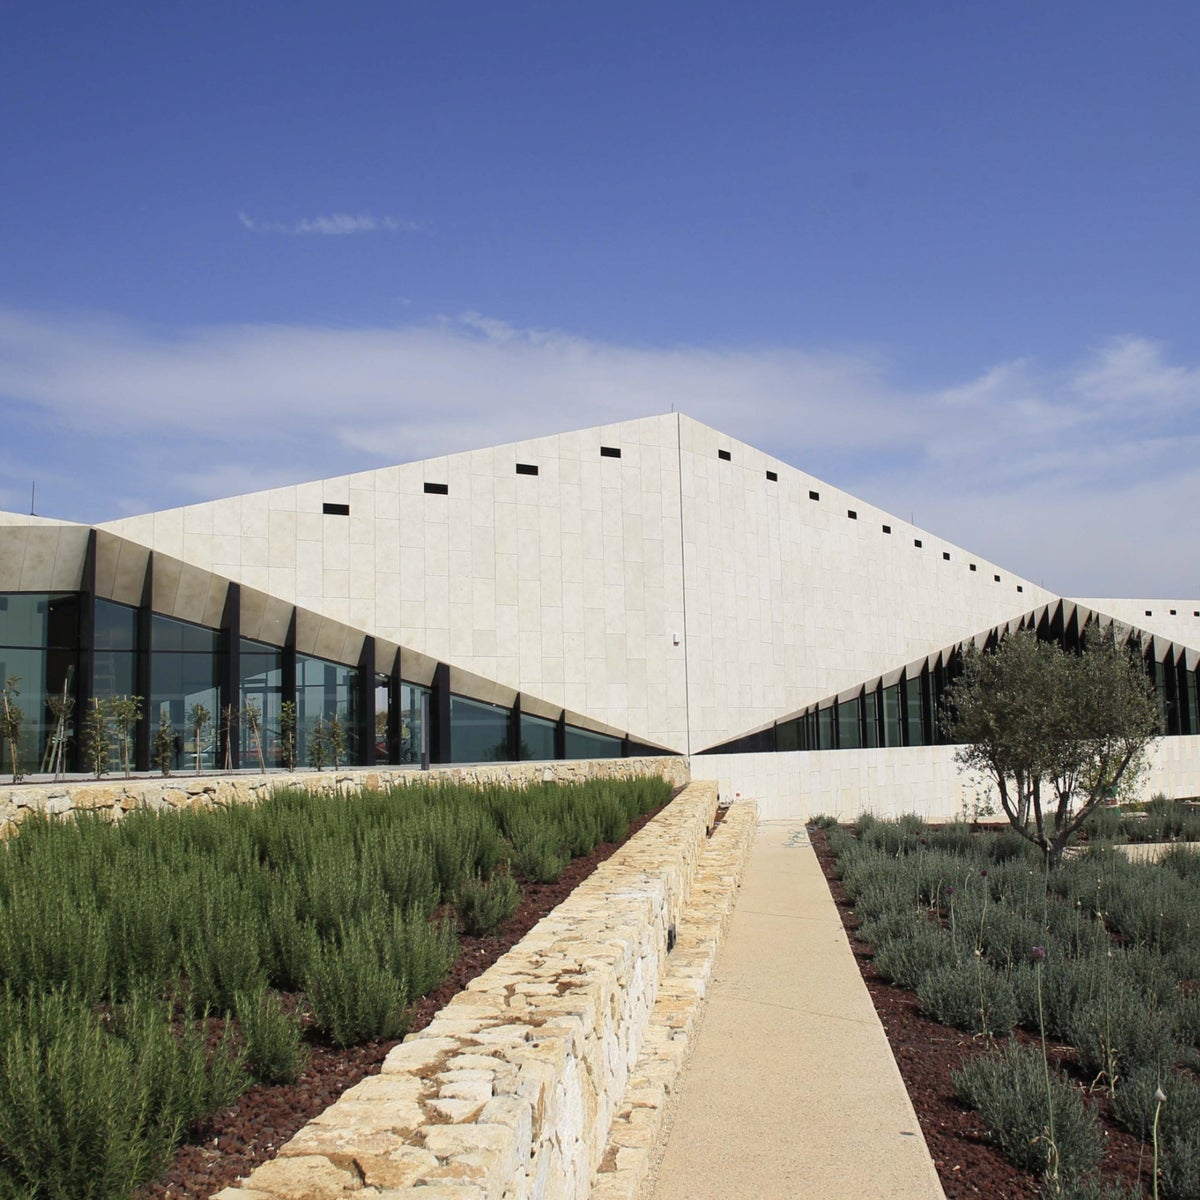 The new Palestinian museum near Ramallah in the West Bank.